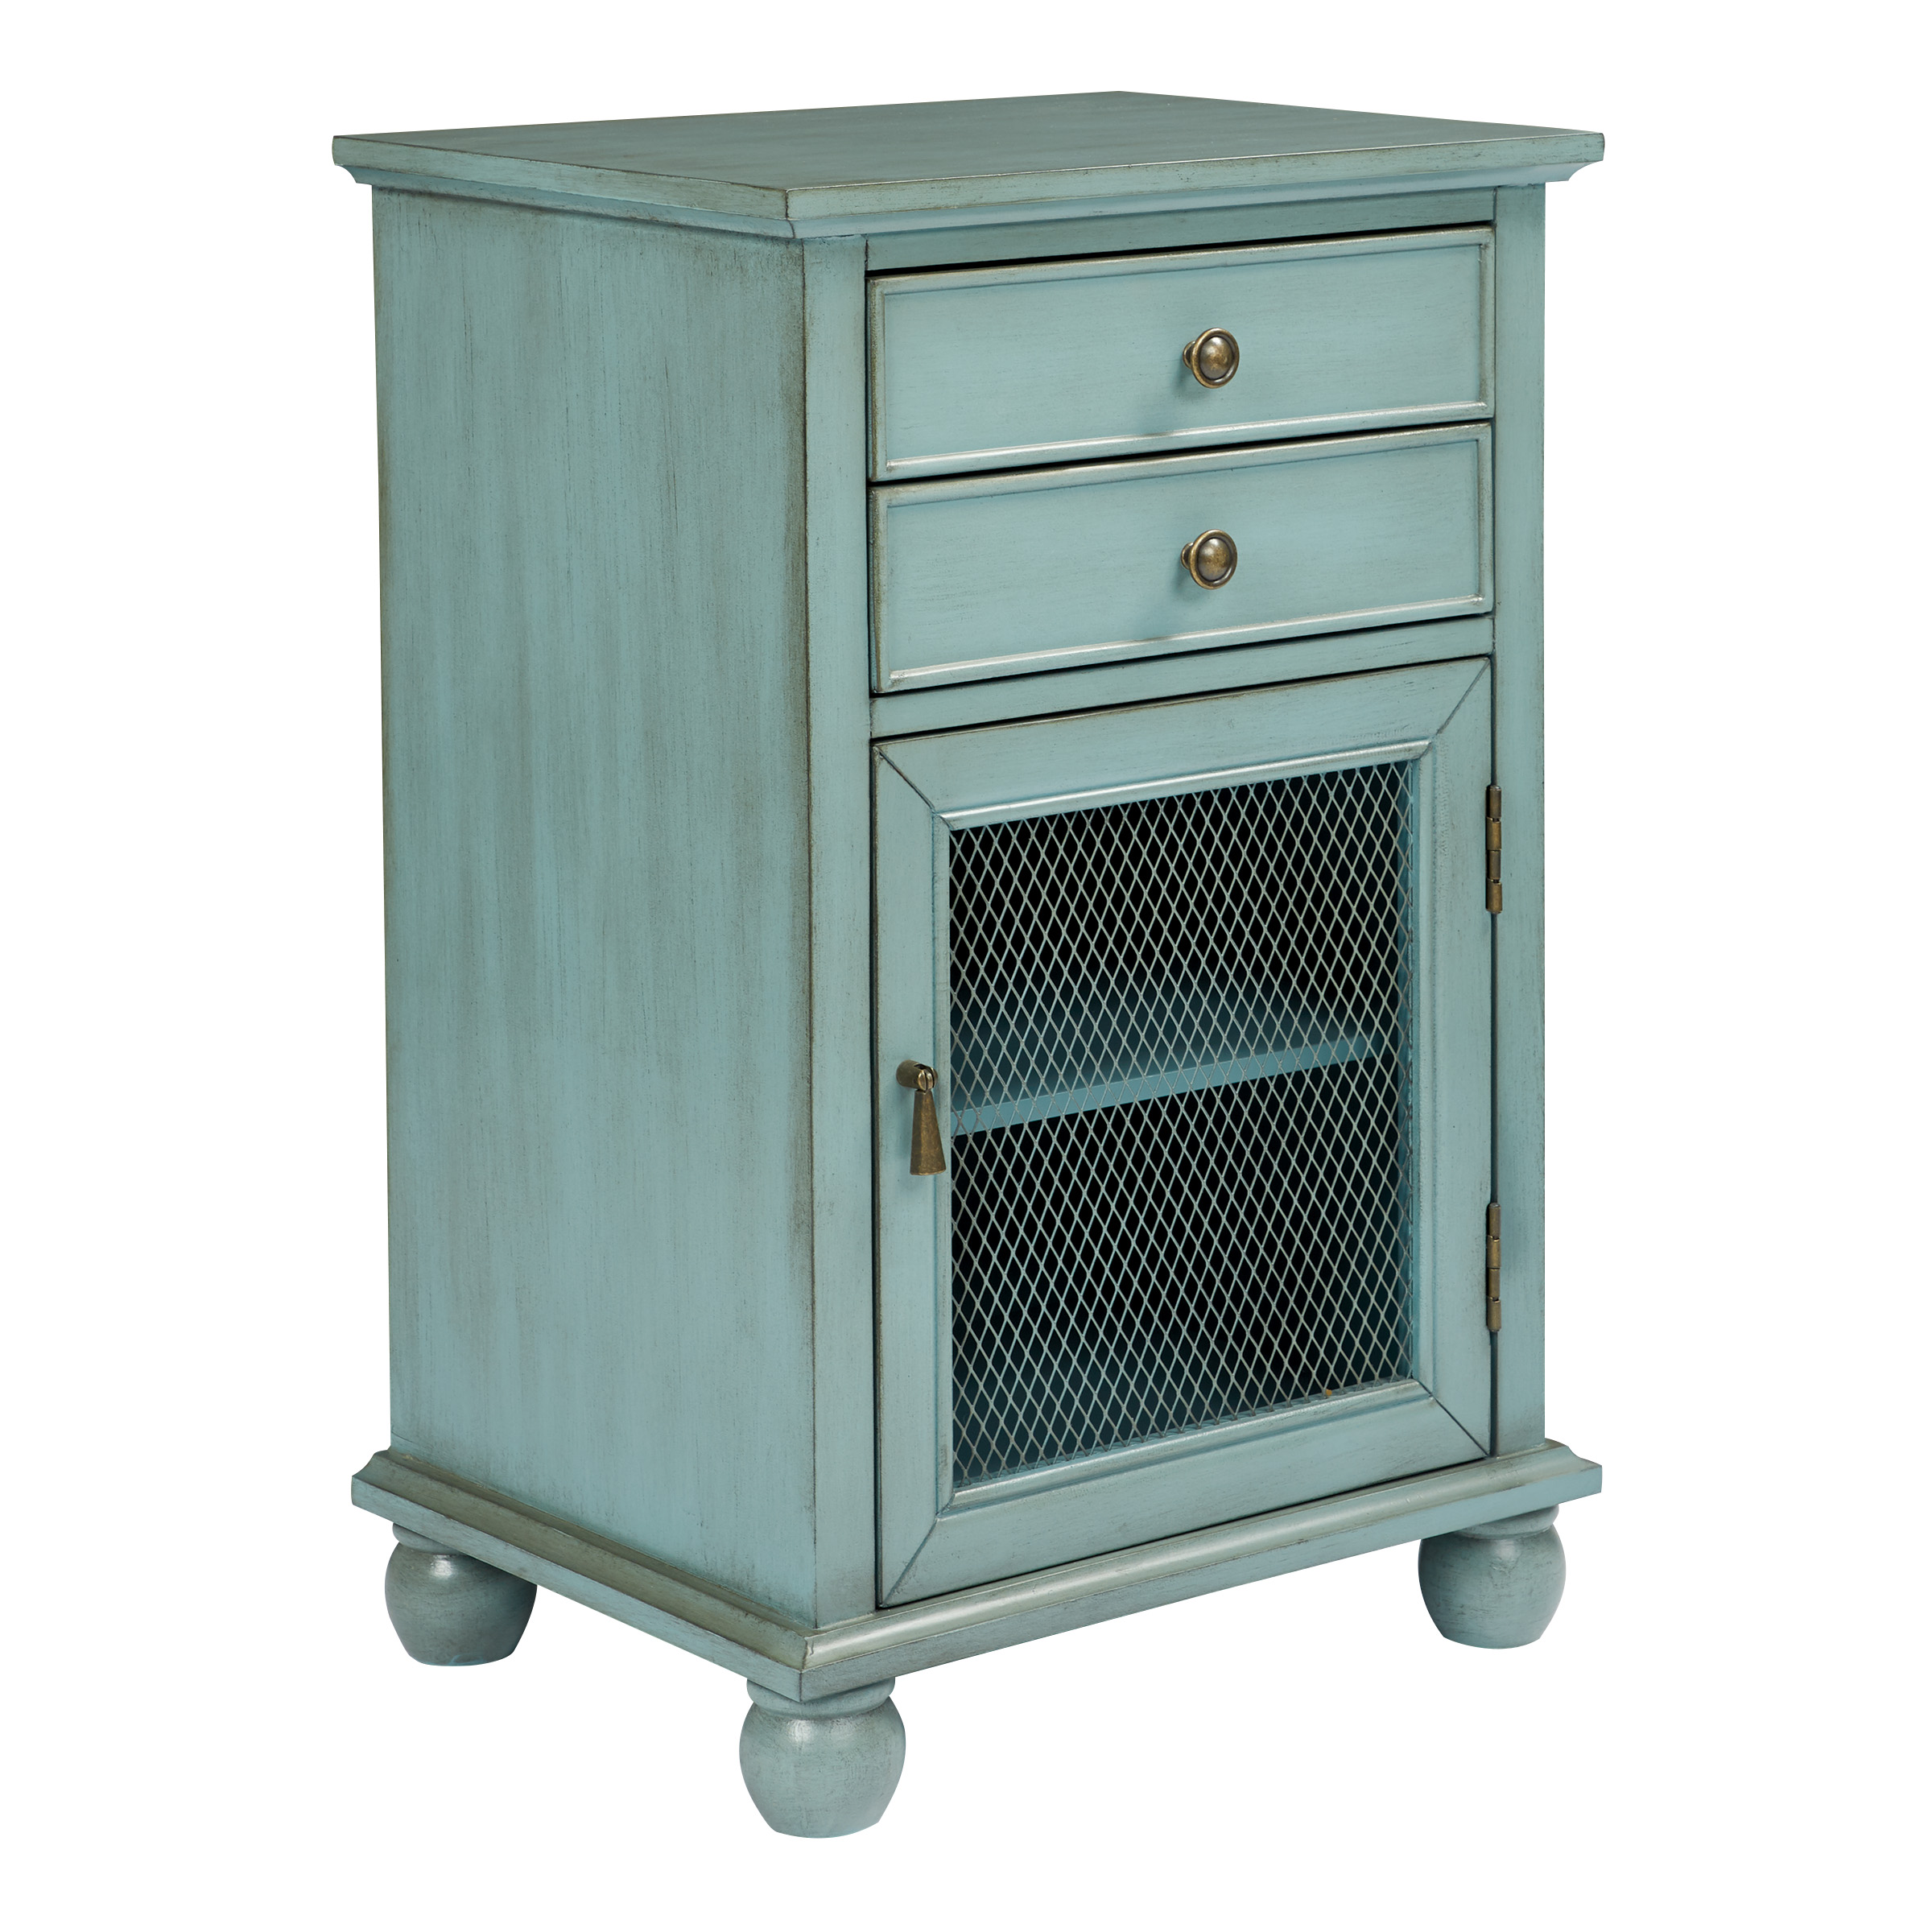 Inspired By Bassett Alton Storage Cabinet In Antique Steel Blue Fully Assembled